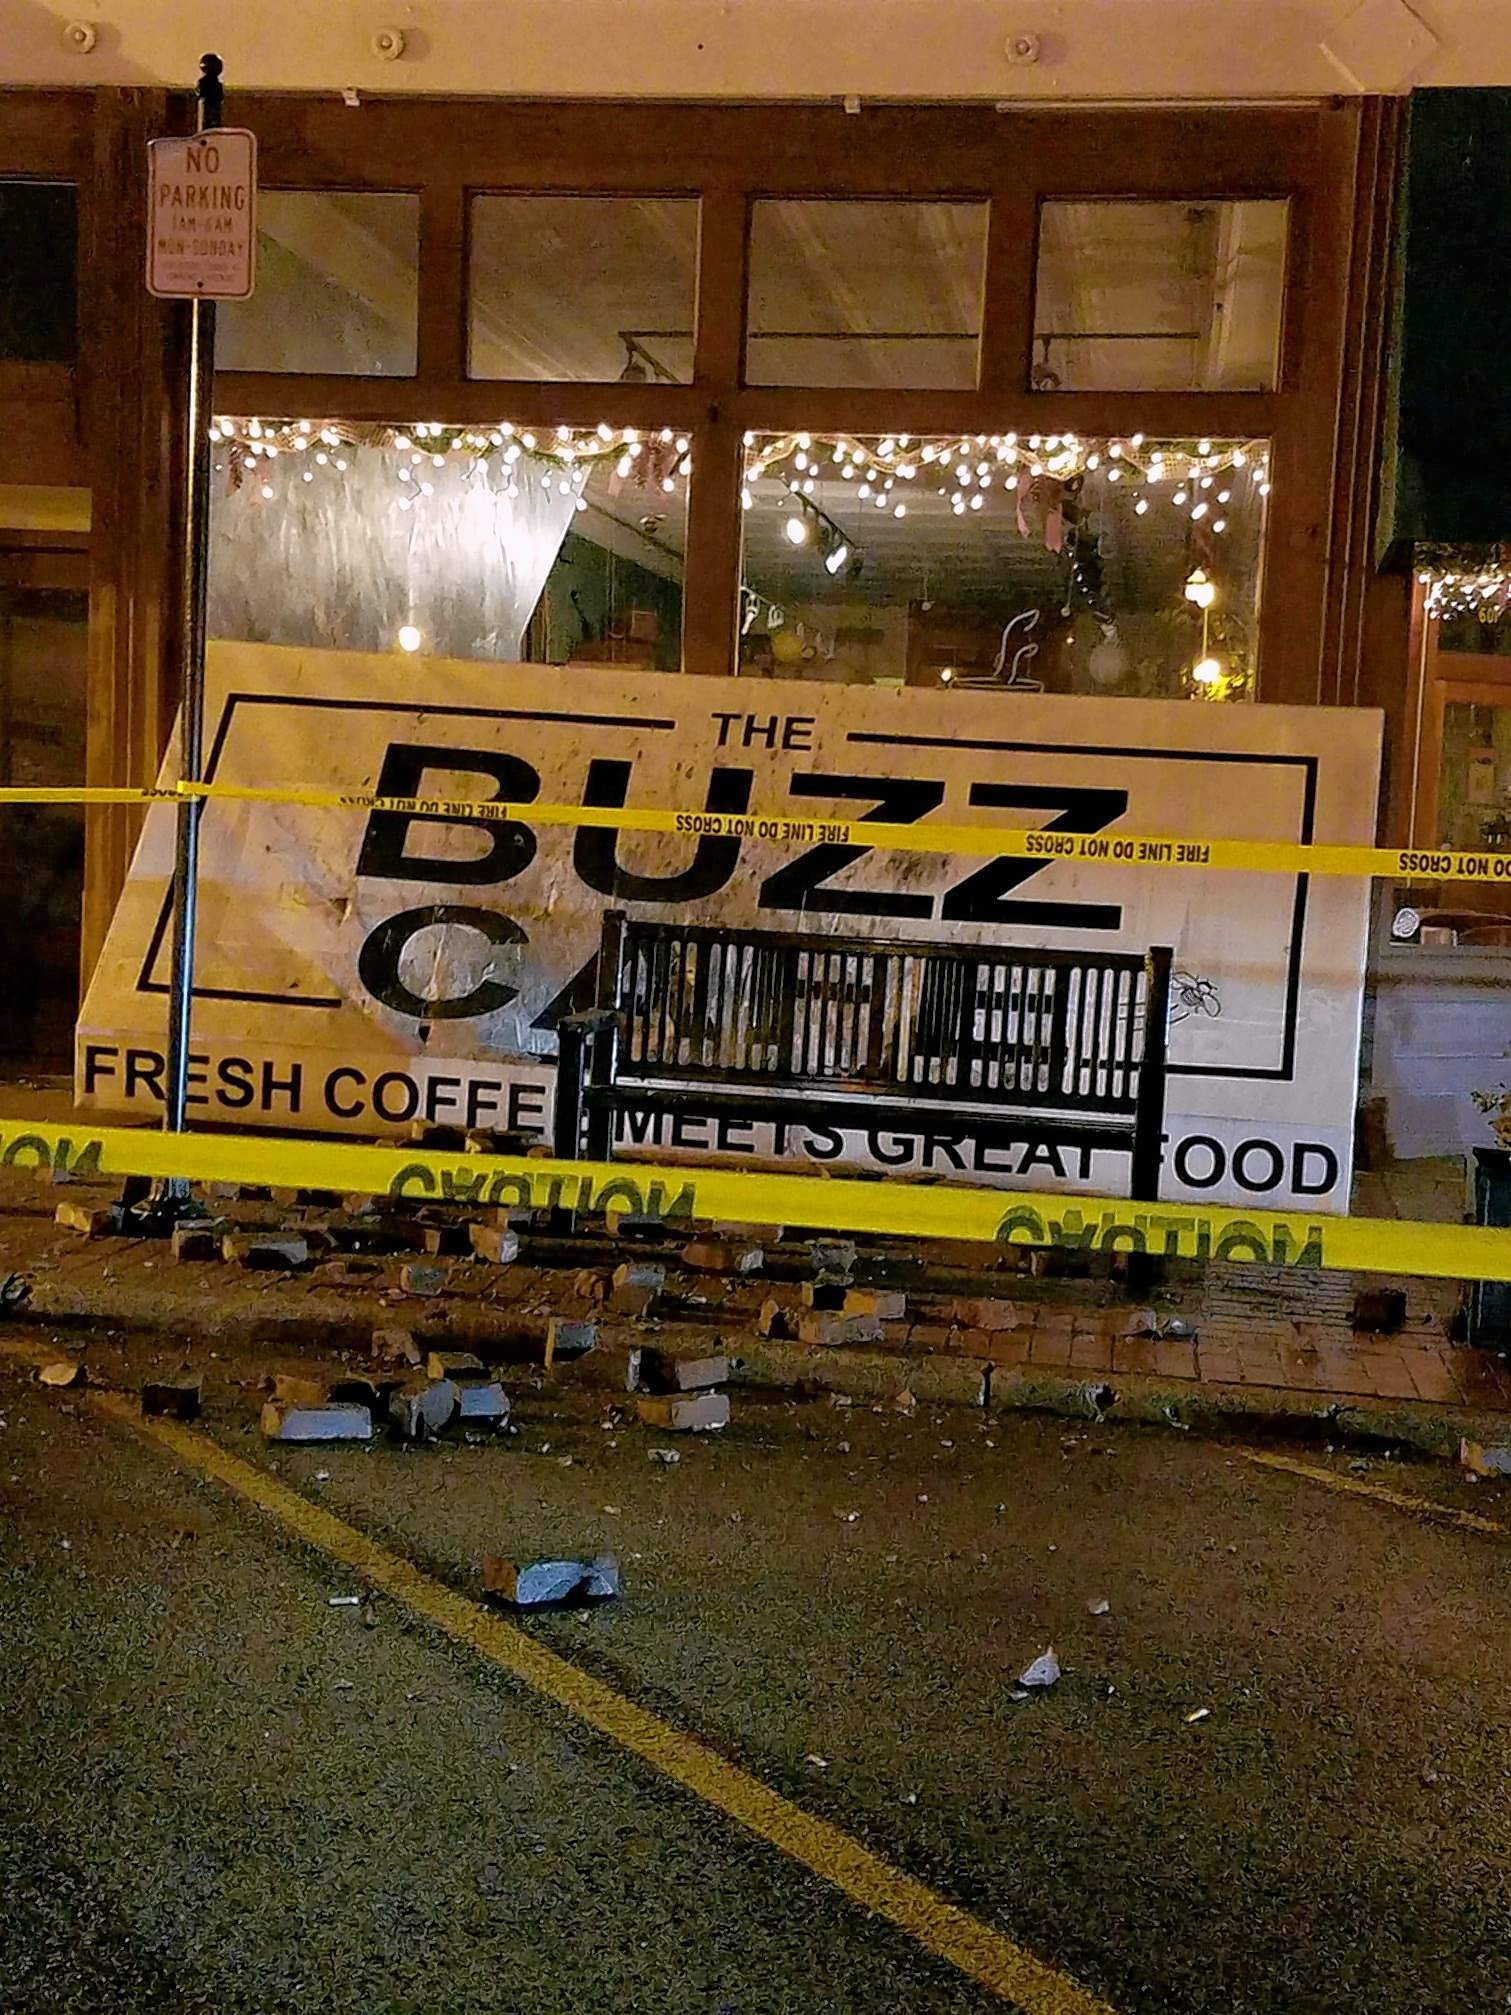 The Buzz was forced to close its doors Feb. 21 after bricks from the top of the building fell, damaging the awning. What was intended to be only a day or two of closure turned into nearly two weeks.